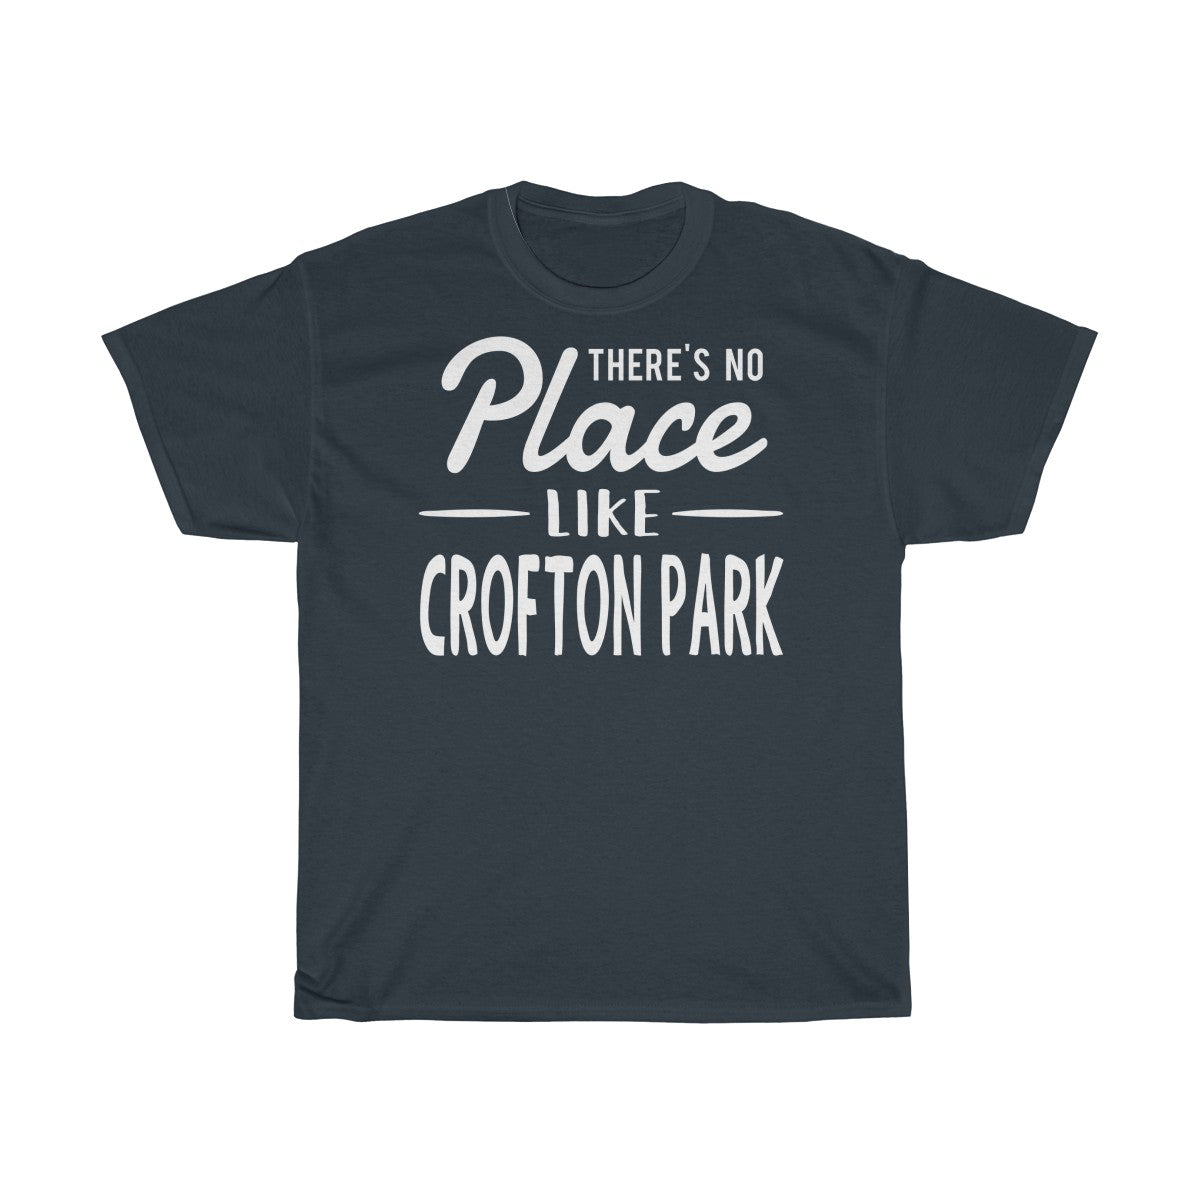 There's No Place Like Crofton Park Unisex T-Shirt